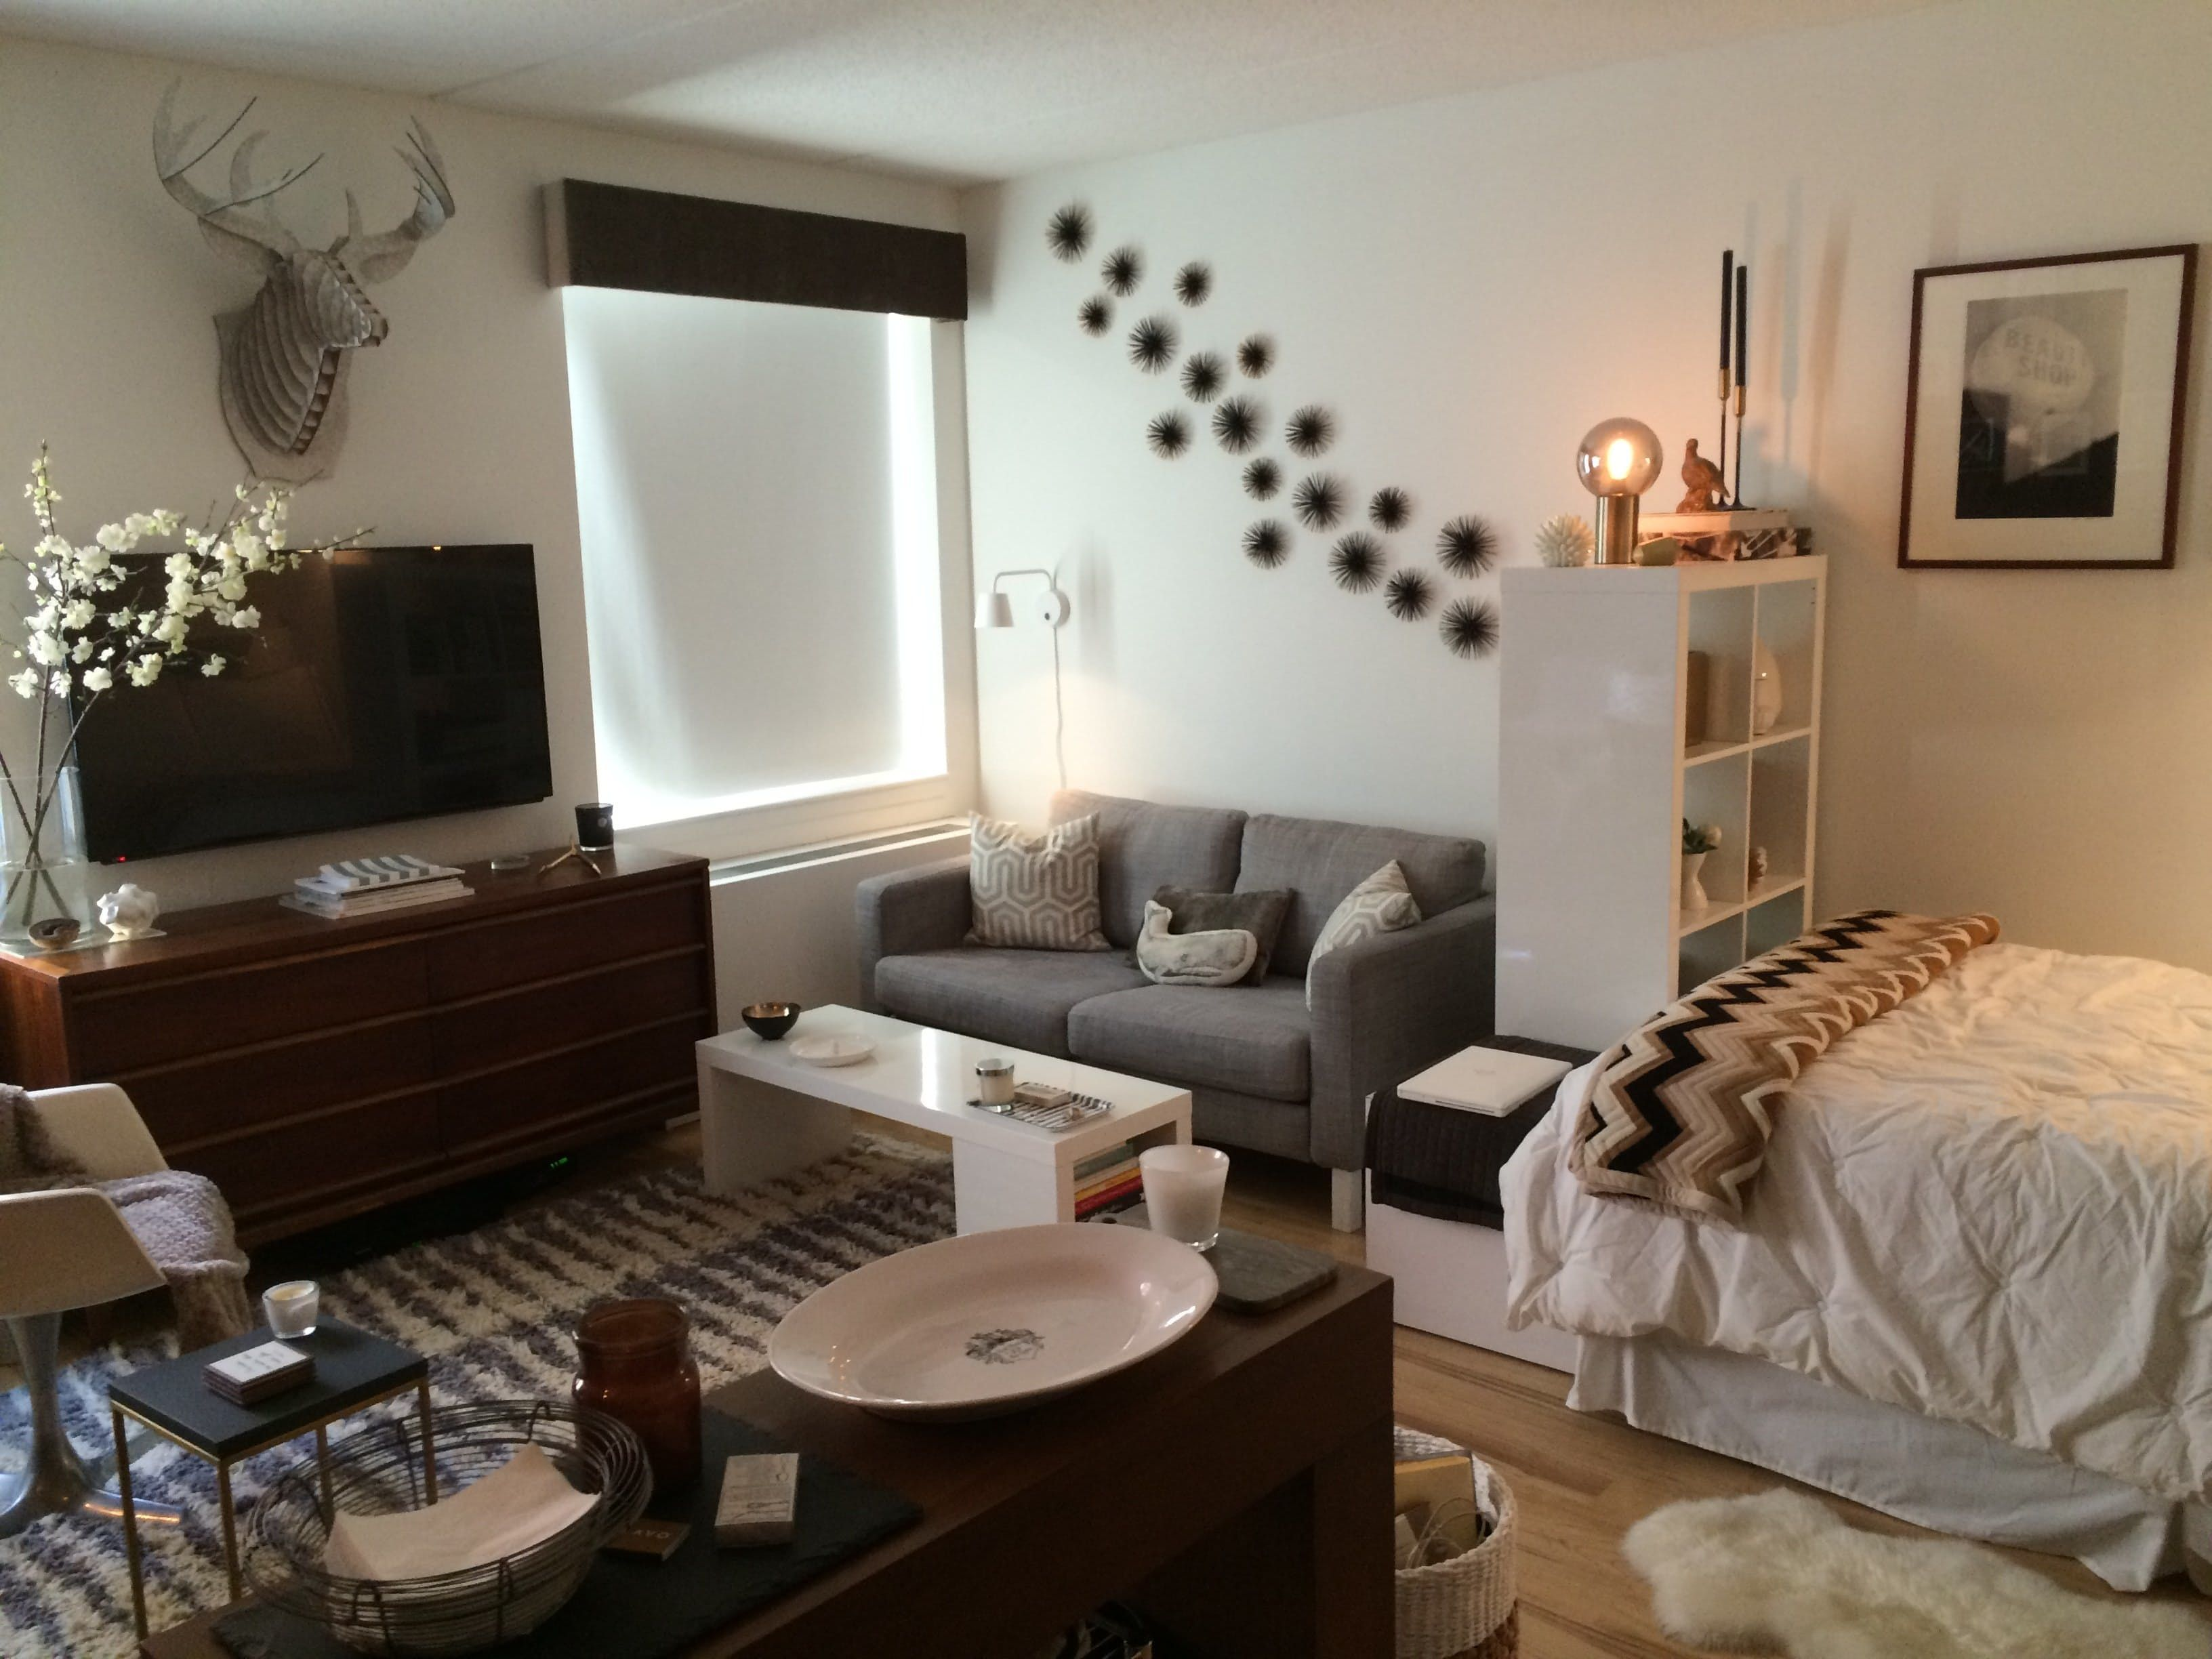 Delightful 5 Studio Apartment Layouts That Work U2014 Renters Solutions